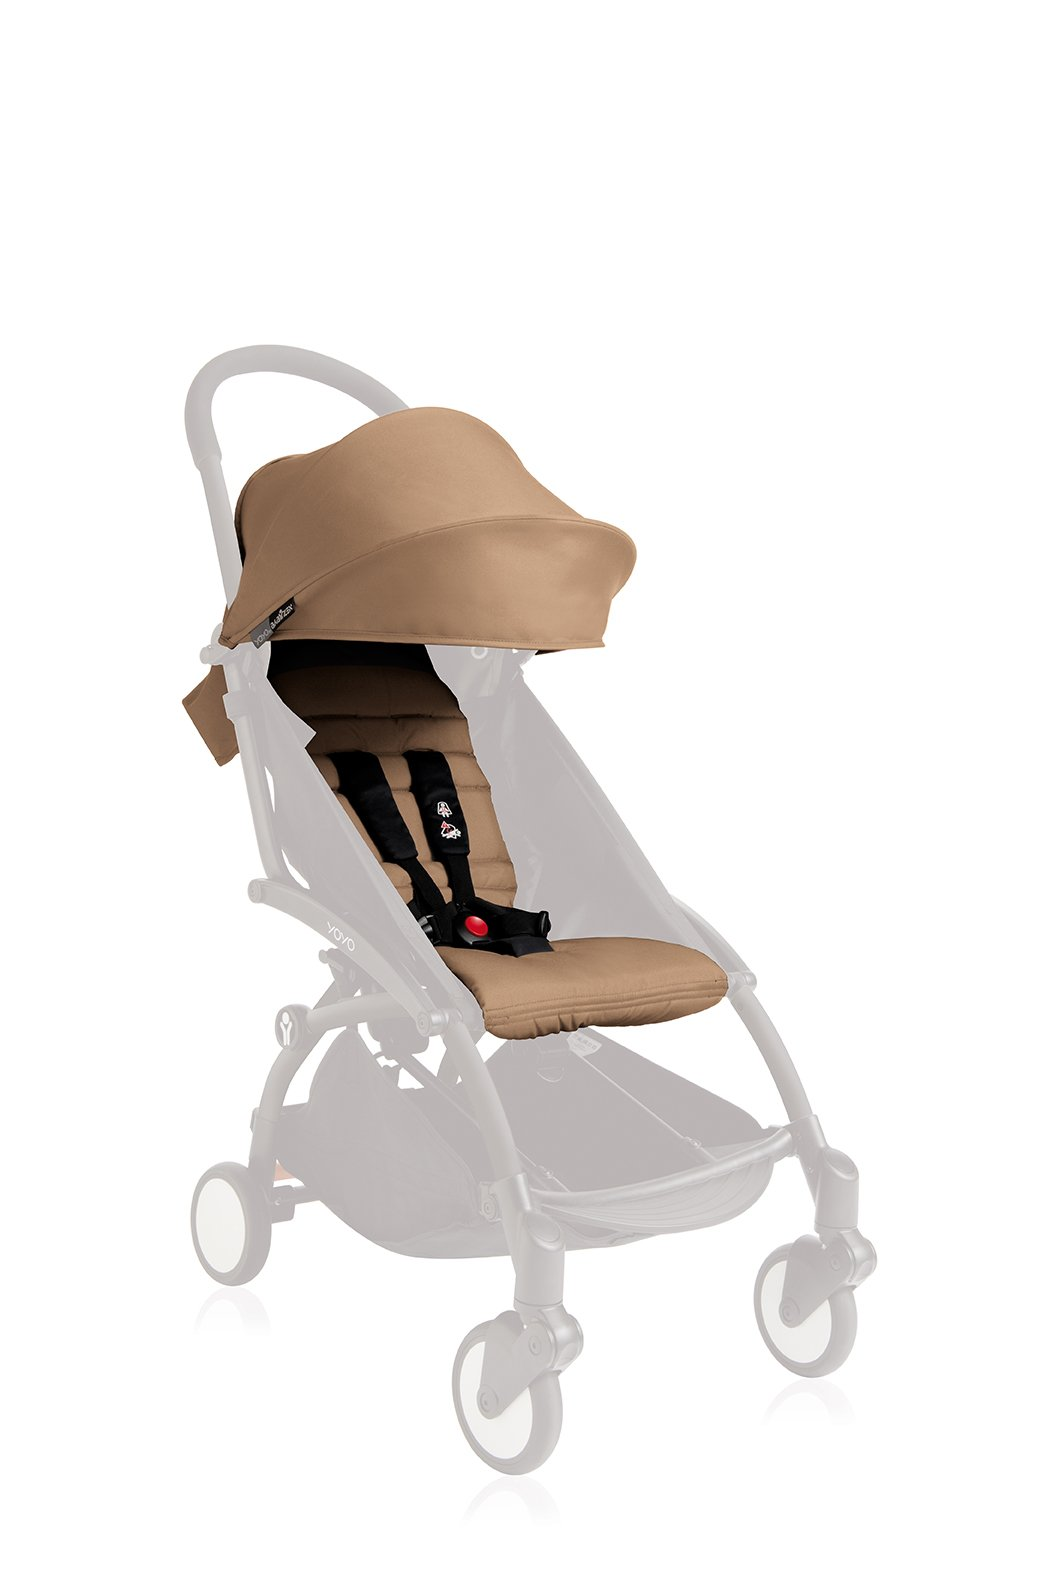 BABYZEN YOYO 6+ Seat Pad and Canopy Only - Taupe